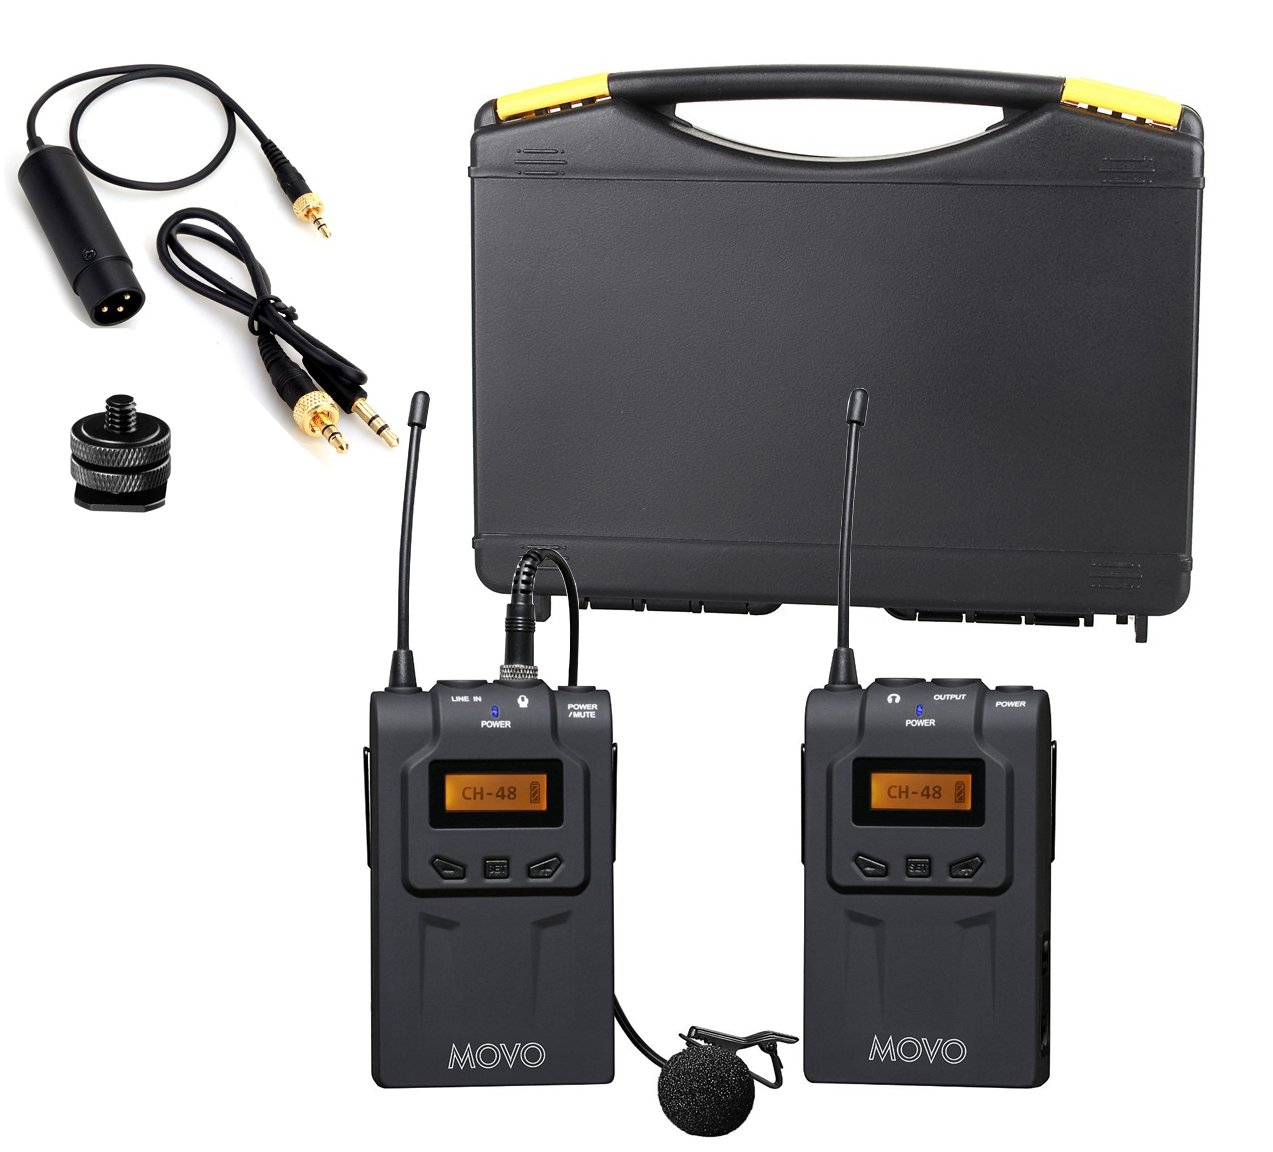 Movo WMIC70 Wireless Lavalier Microphone System - 48 Channel UHF Lapel Mic System with Cordless Mic, 3.5mm XLR Output, and Carrying Case (328-foot Range) by Movo